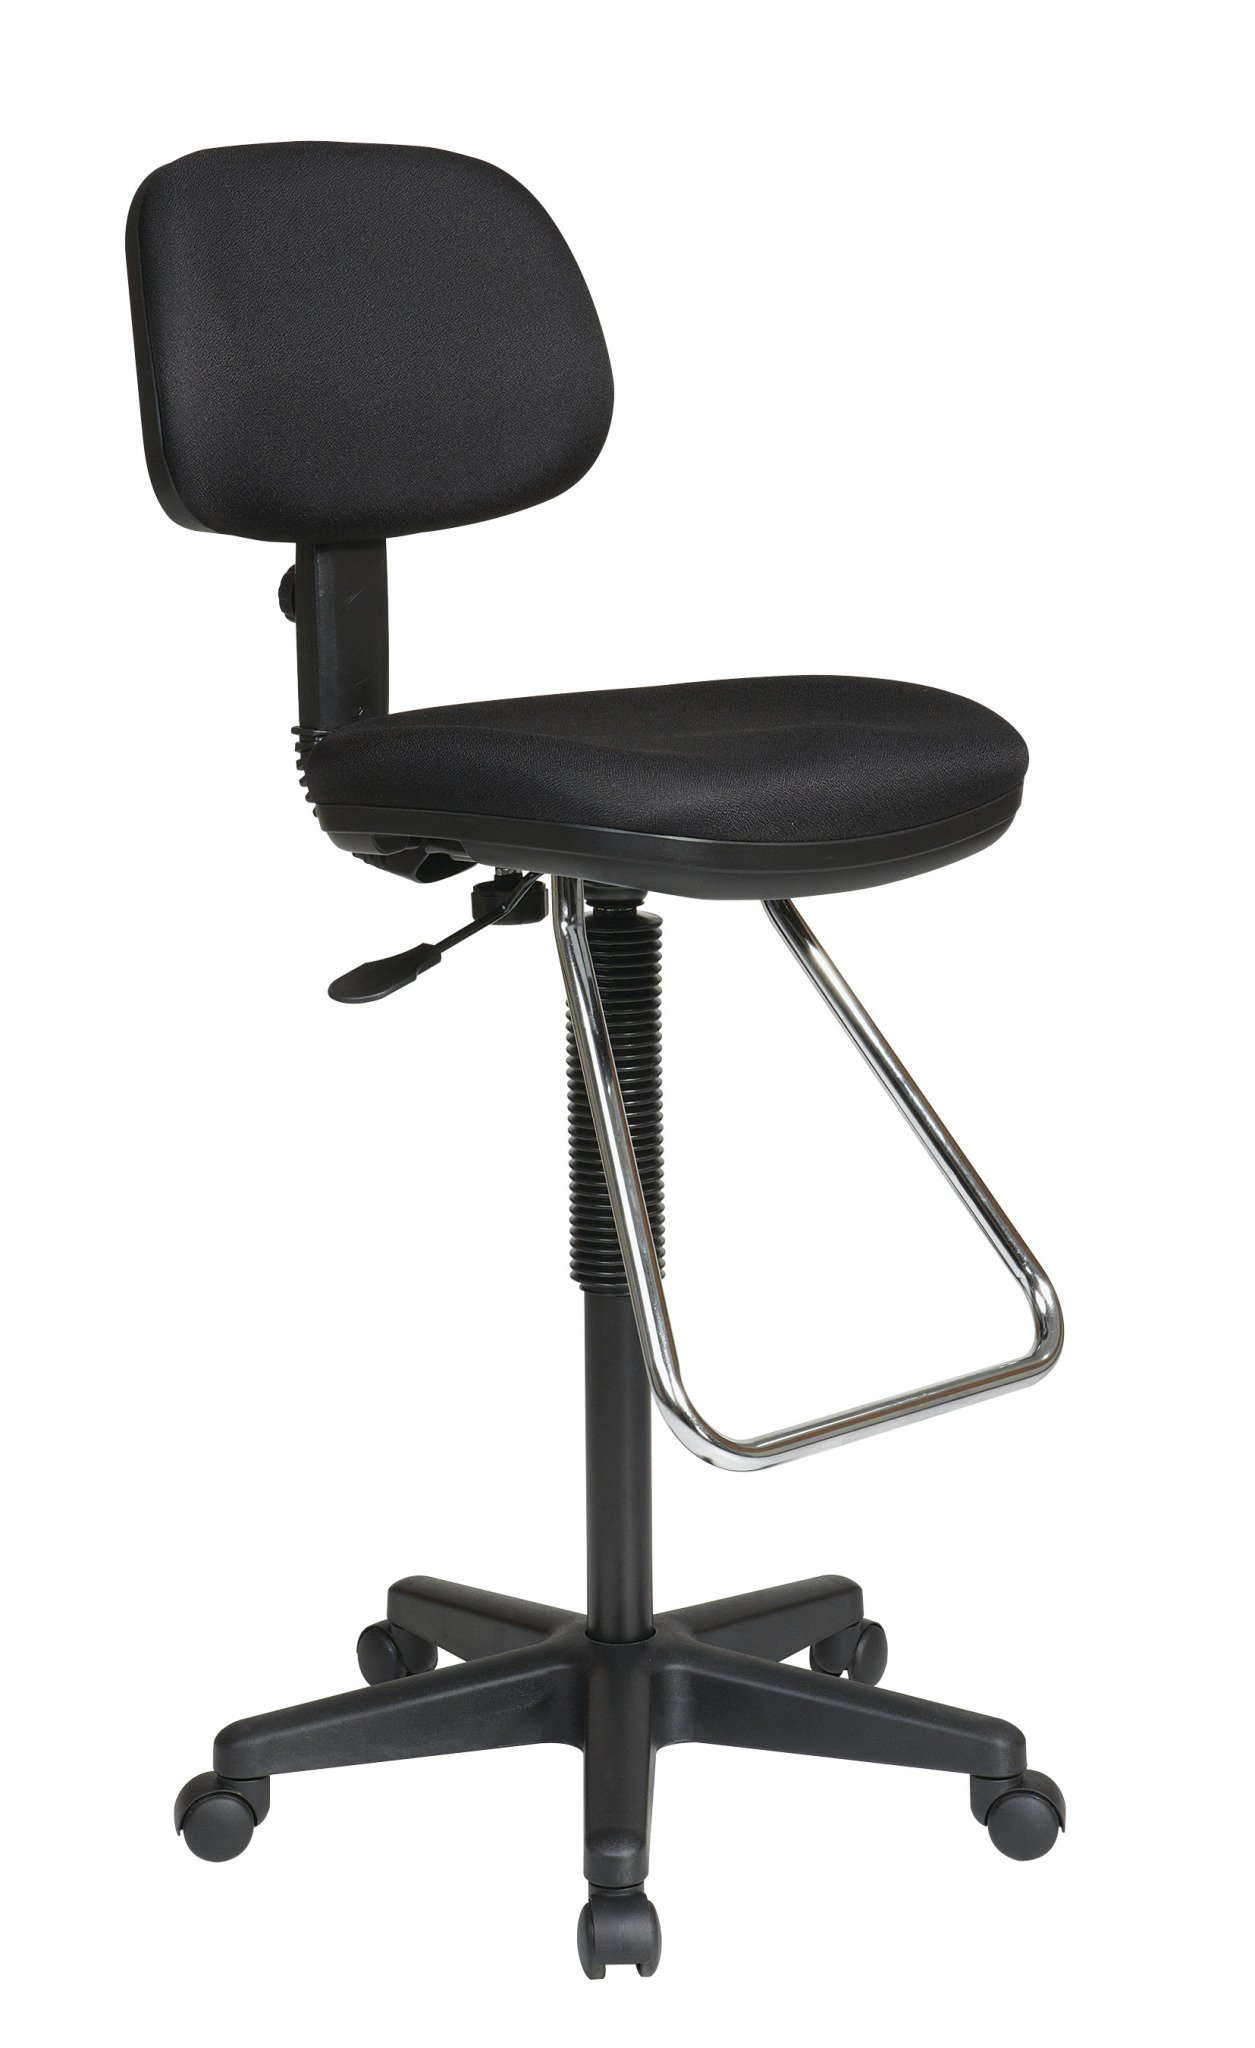 Office Star Pneumatic Drafting Chair with Casters and Chrome Teardrop Footrest, Fabric Stool and Back